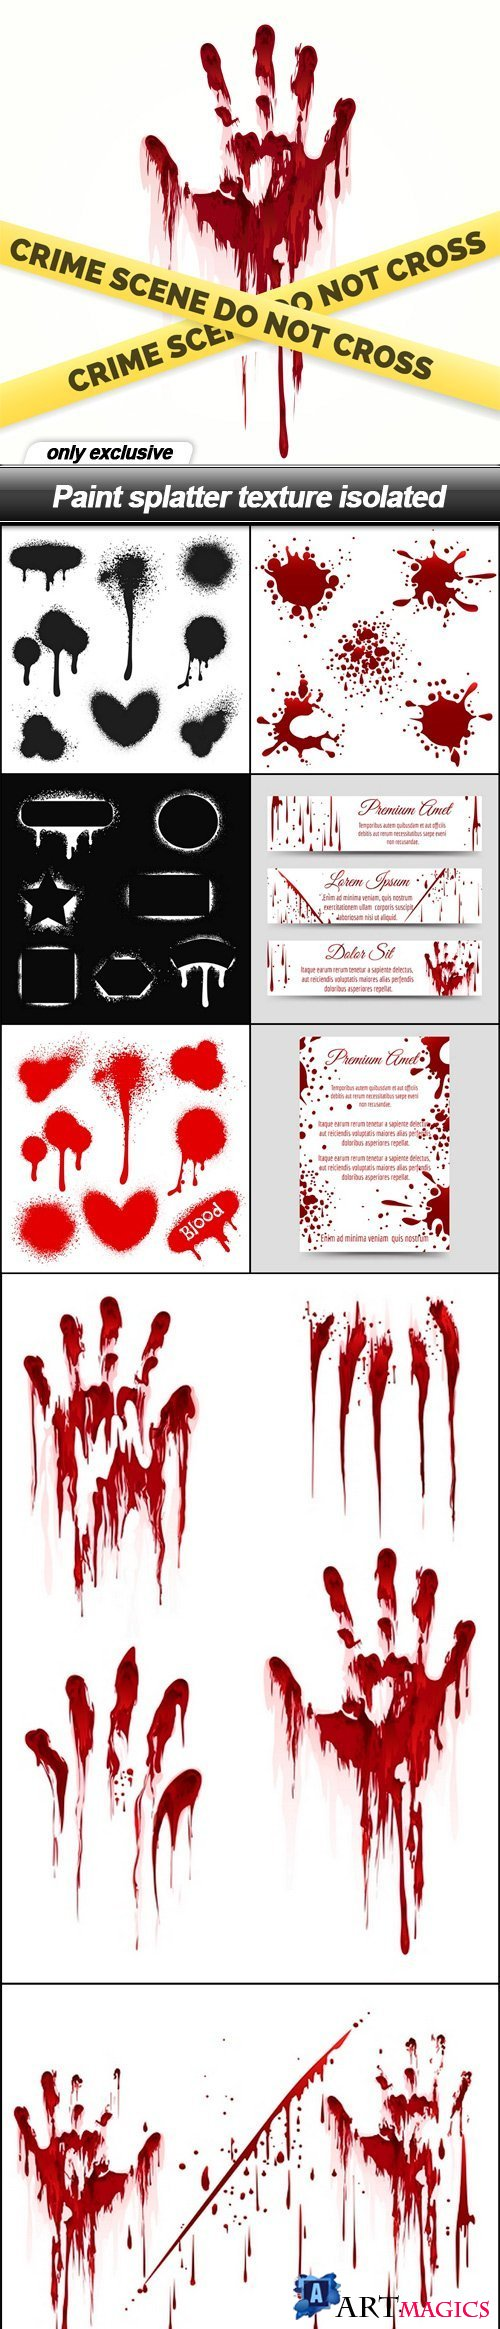 Paint splatter texture isolated - 8 EPS